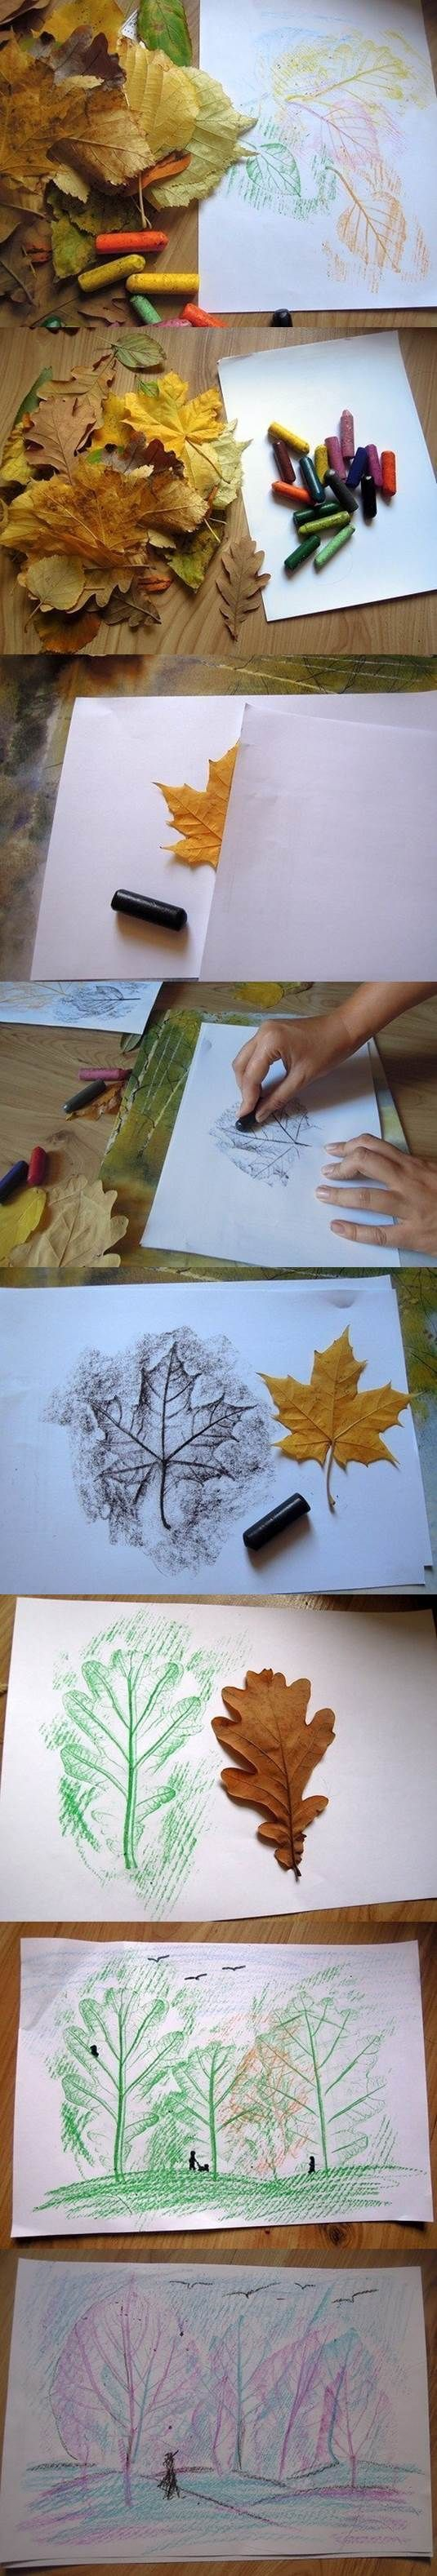 Creative Leaf Drawing | iCreativeIdeas.com Like Us on Facebook == https://www.facebook.com/icreativeideas